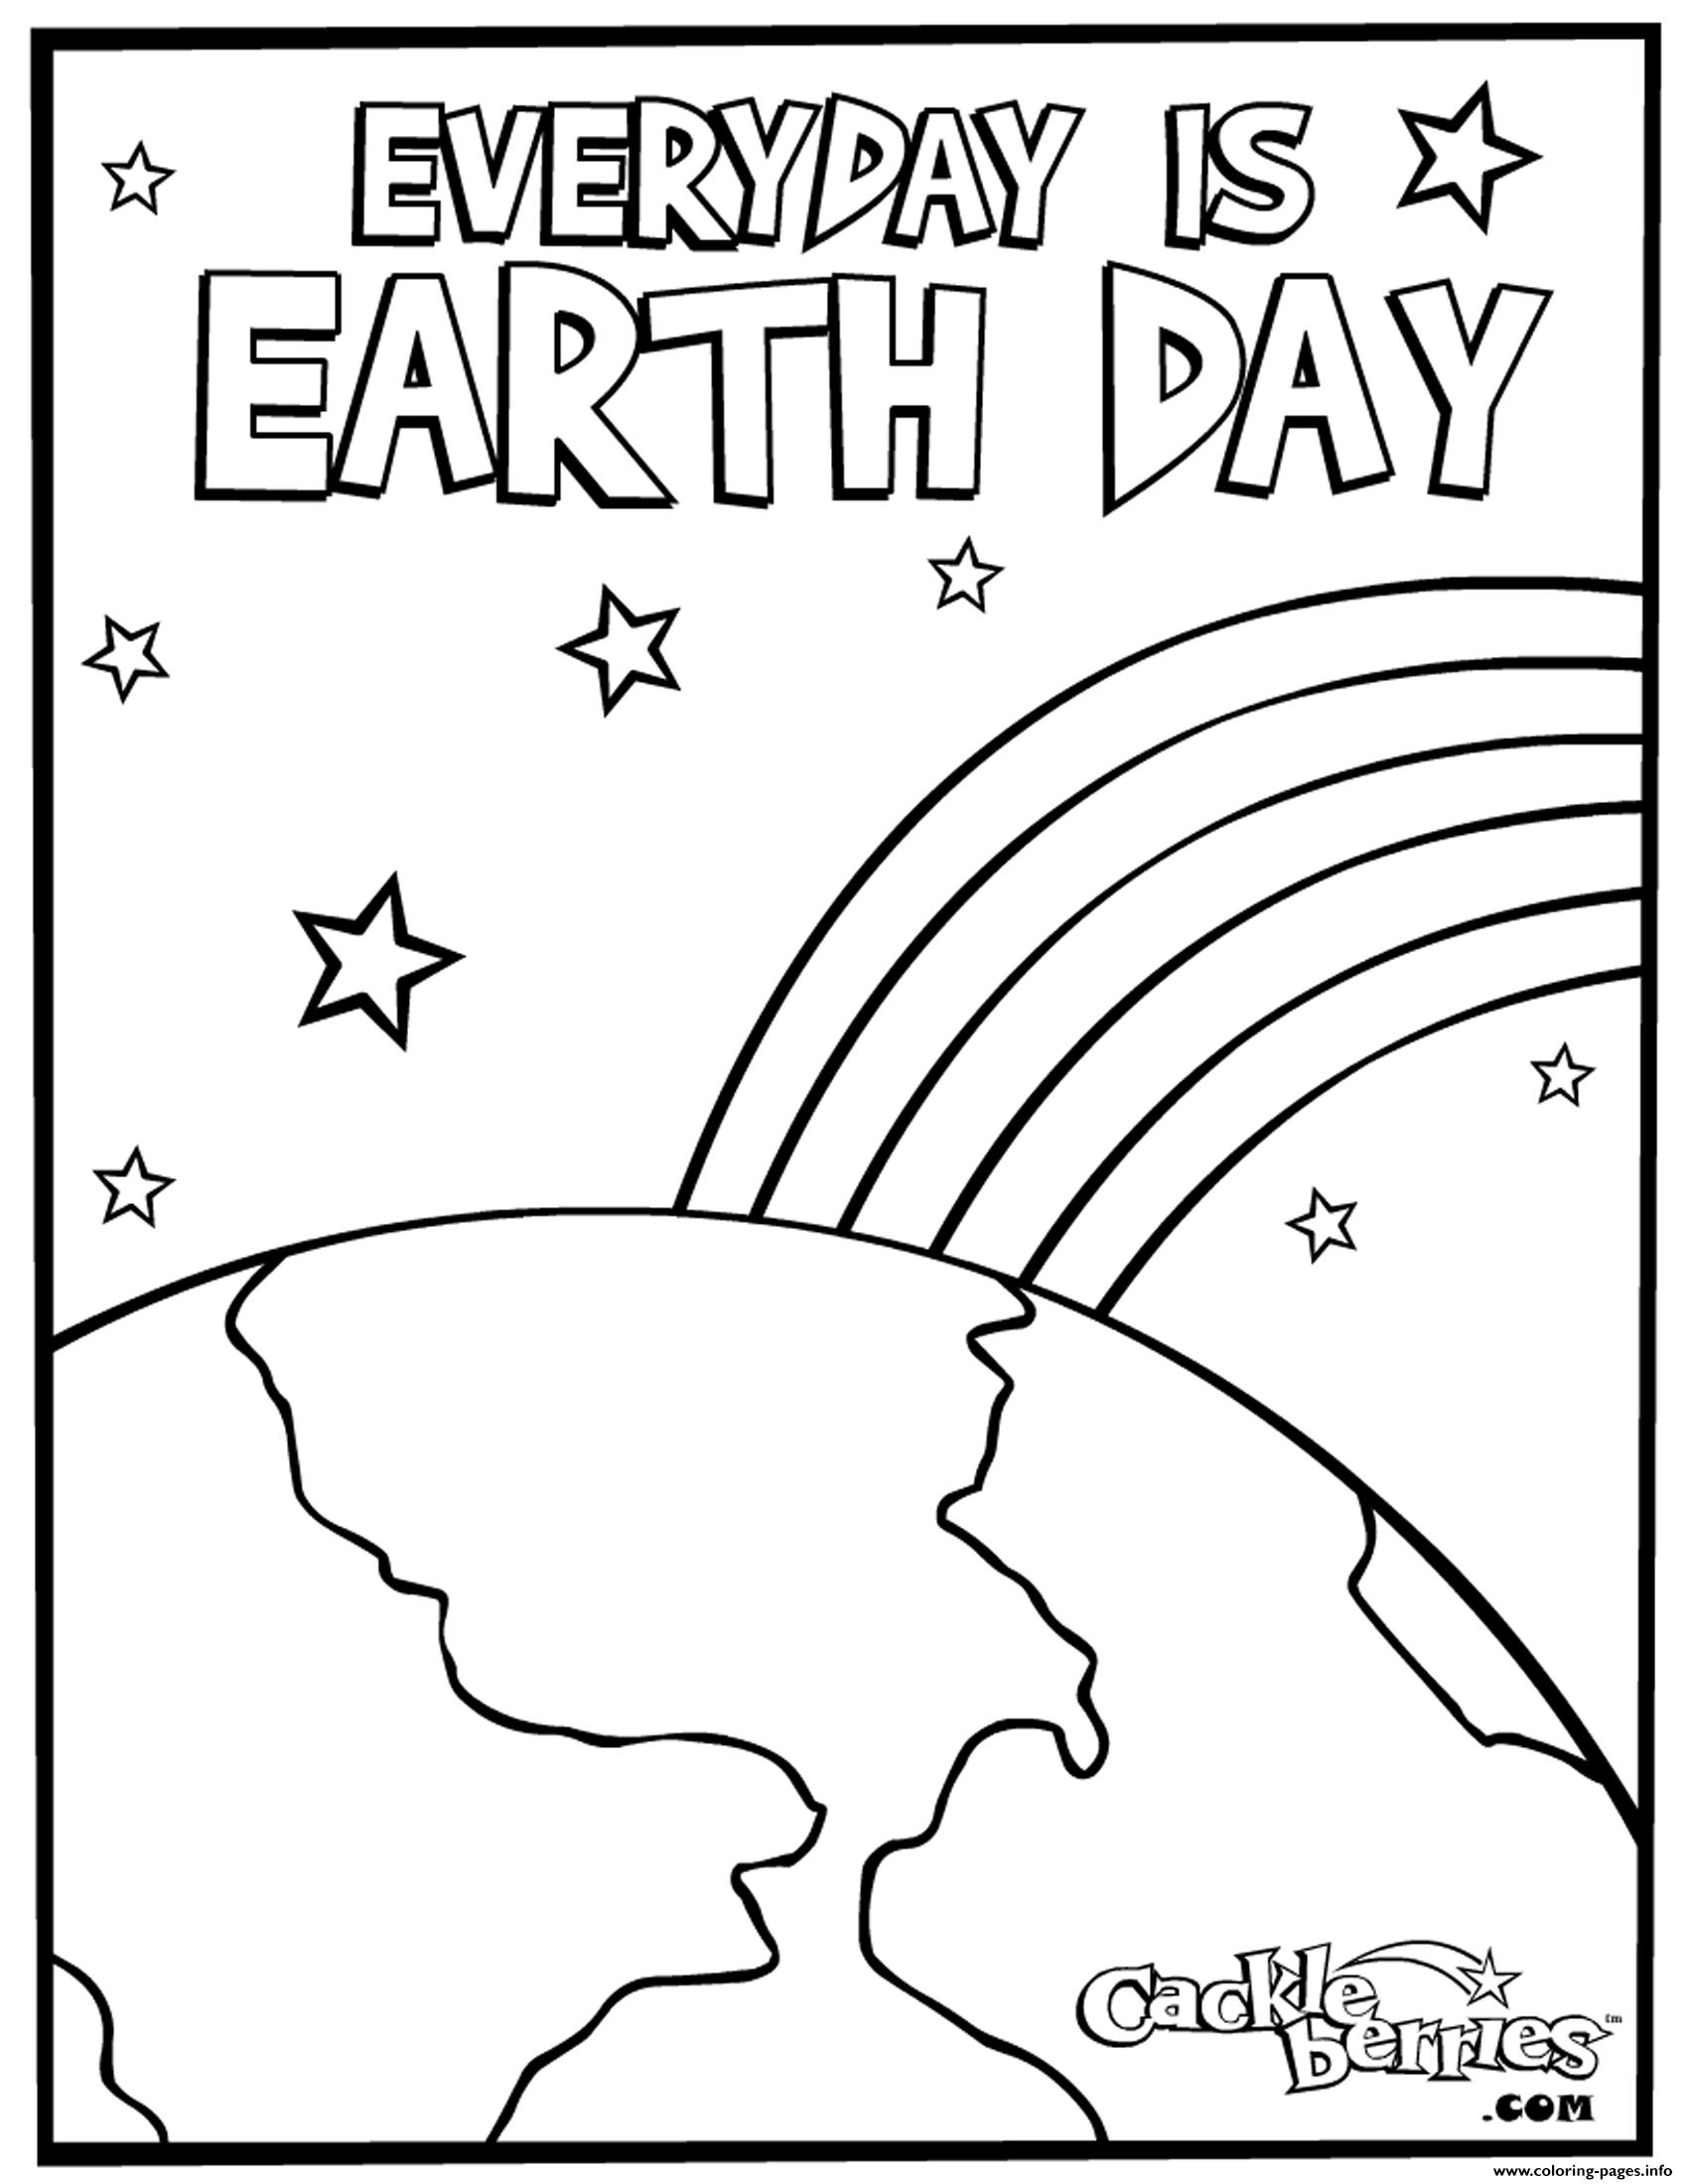 Everyday Is Earth Day coloring pages